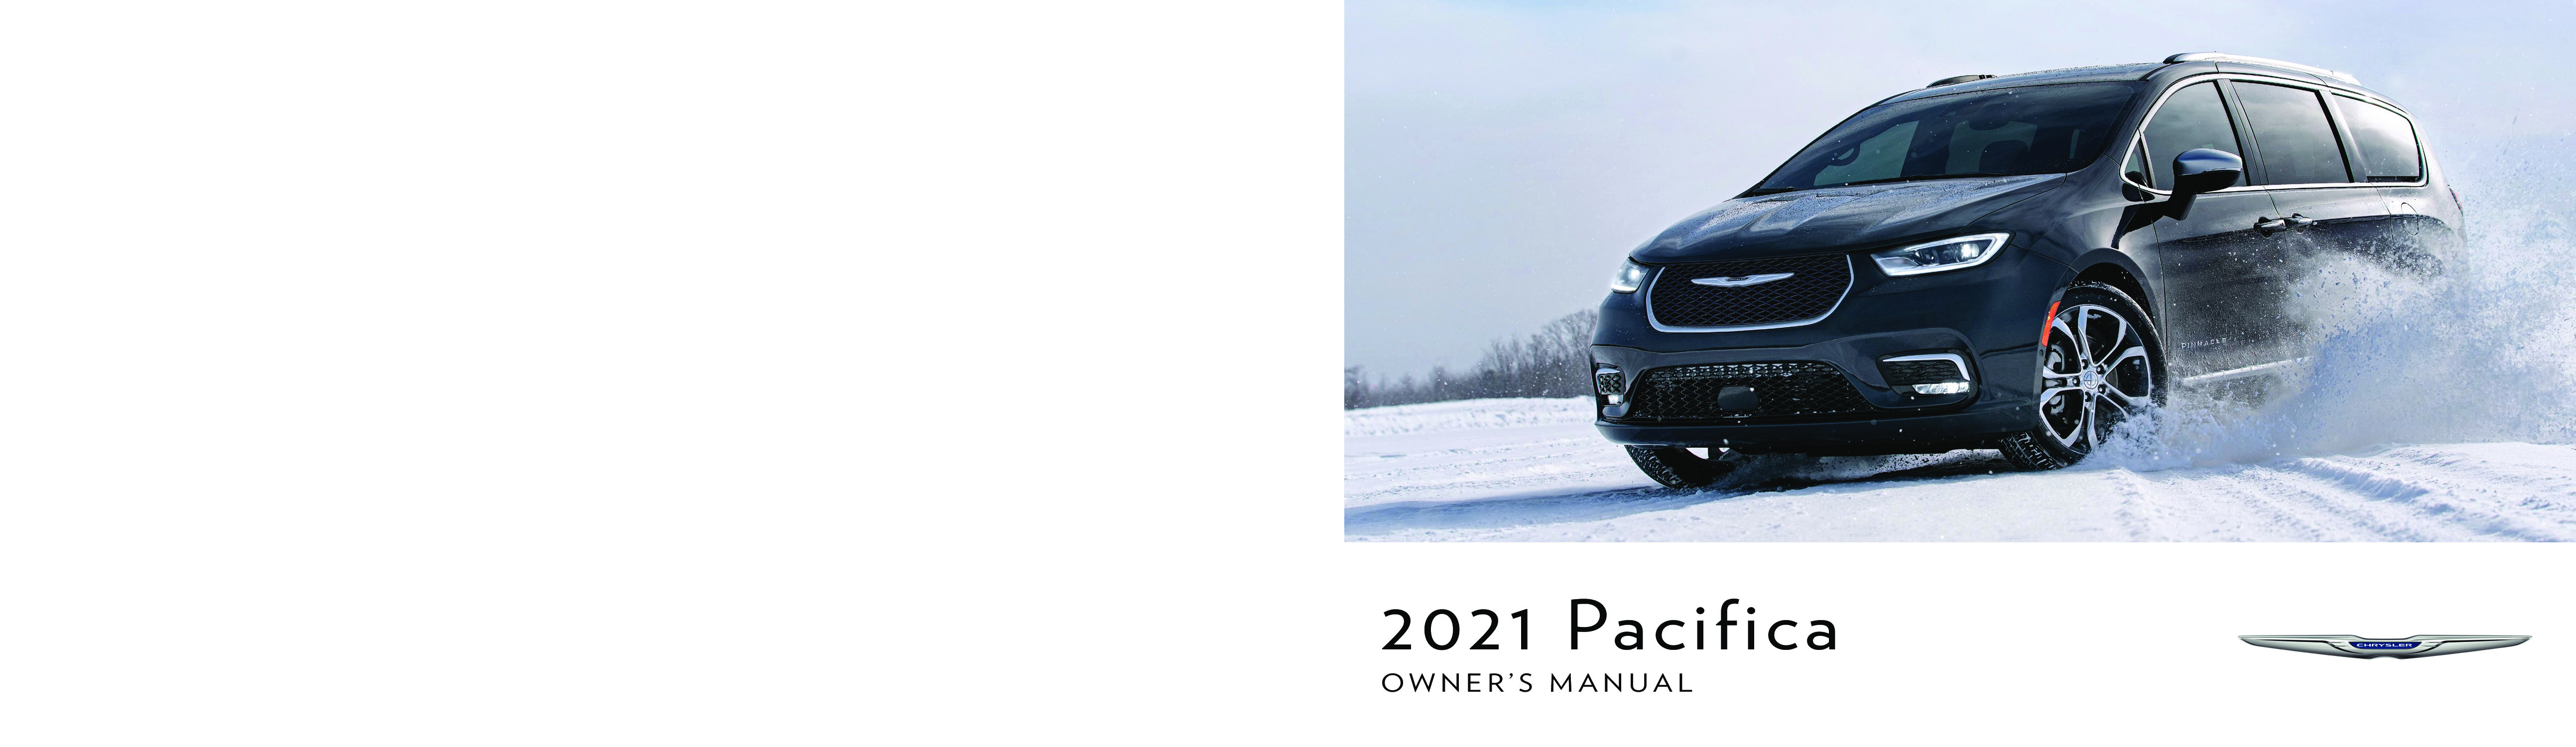 2021 Chrysler Pacifica owners manual